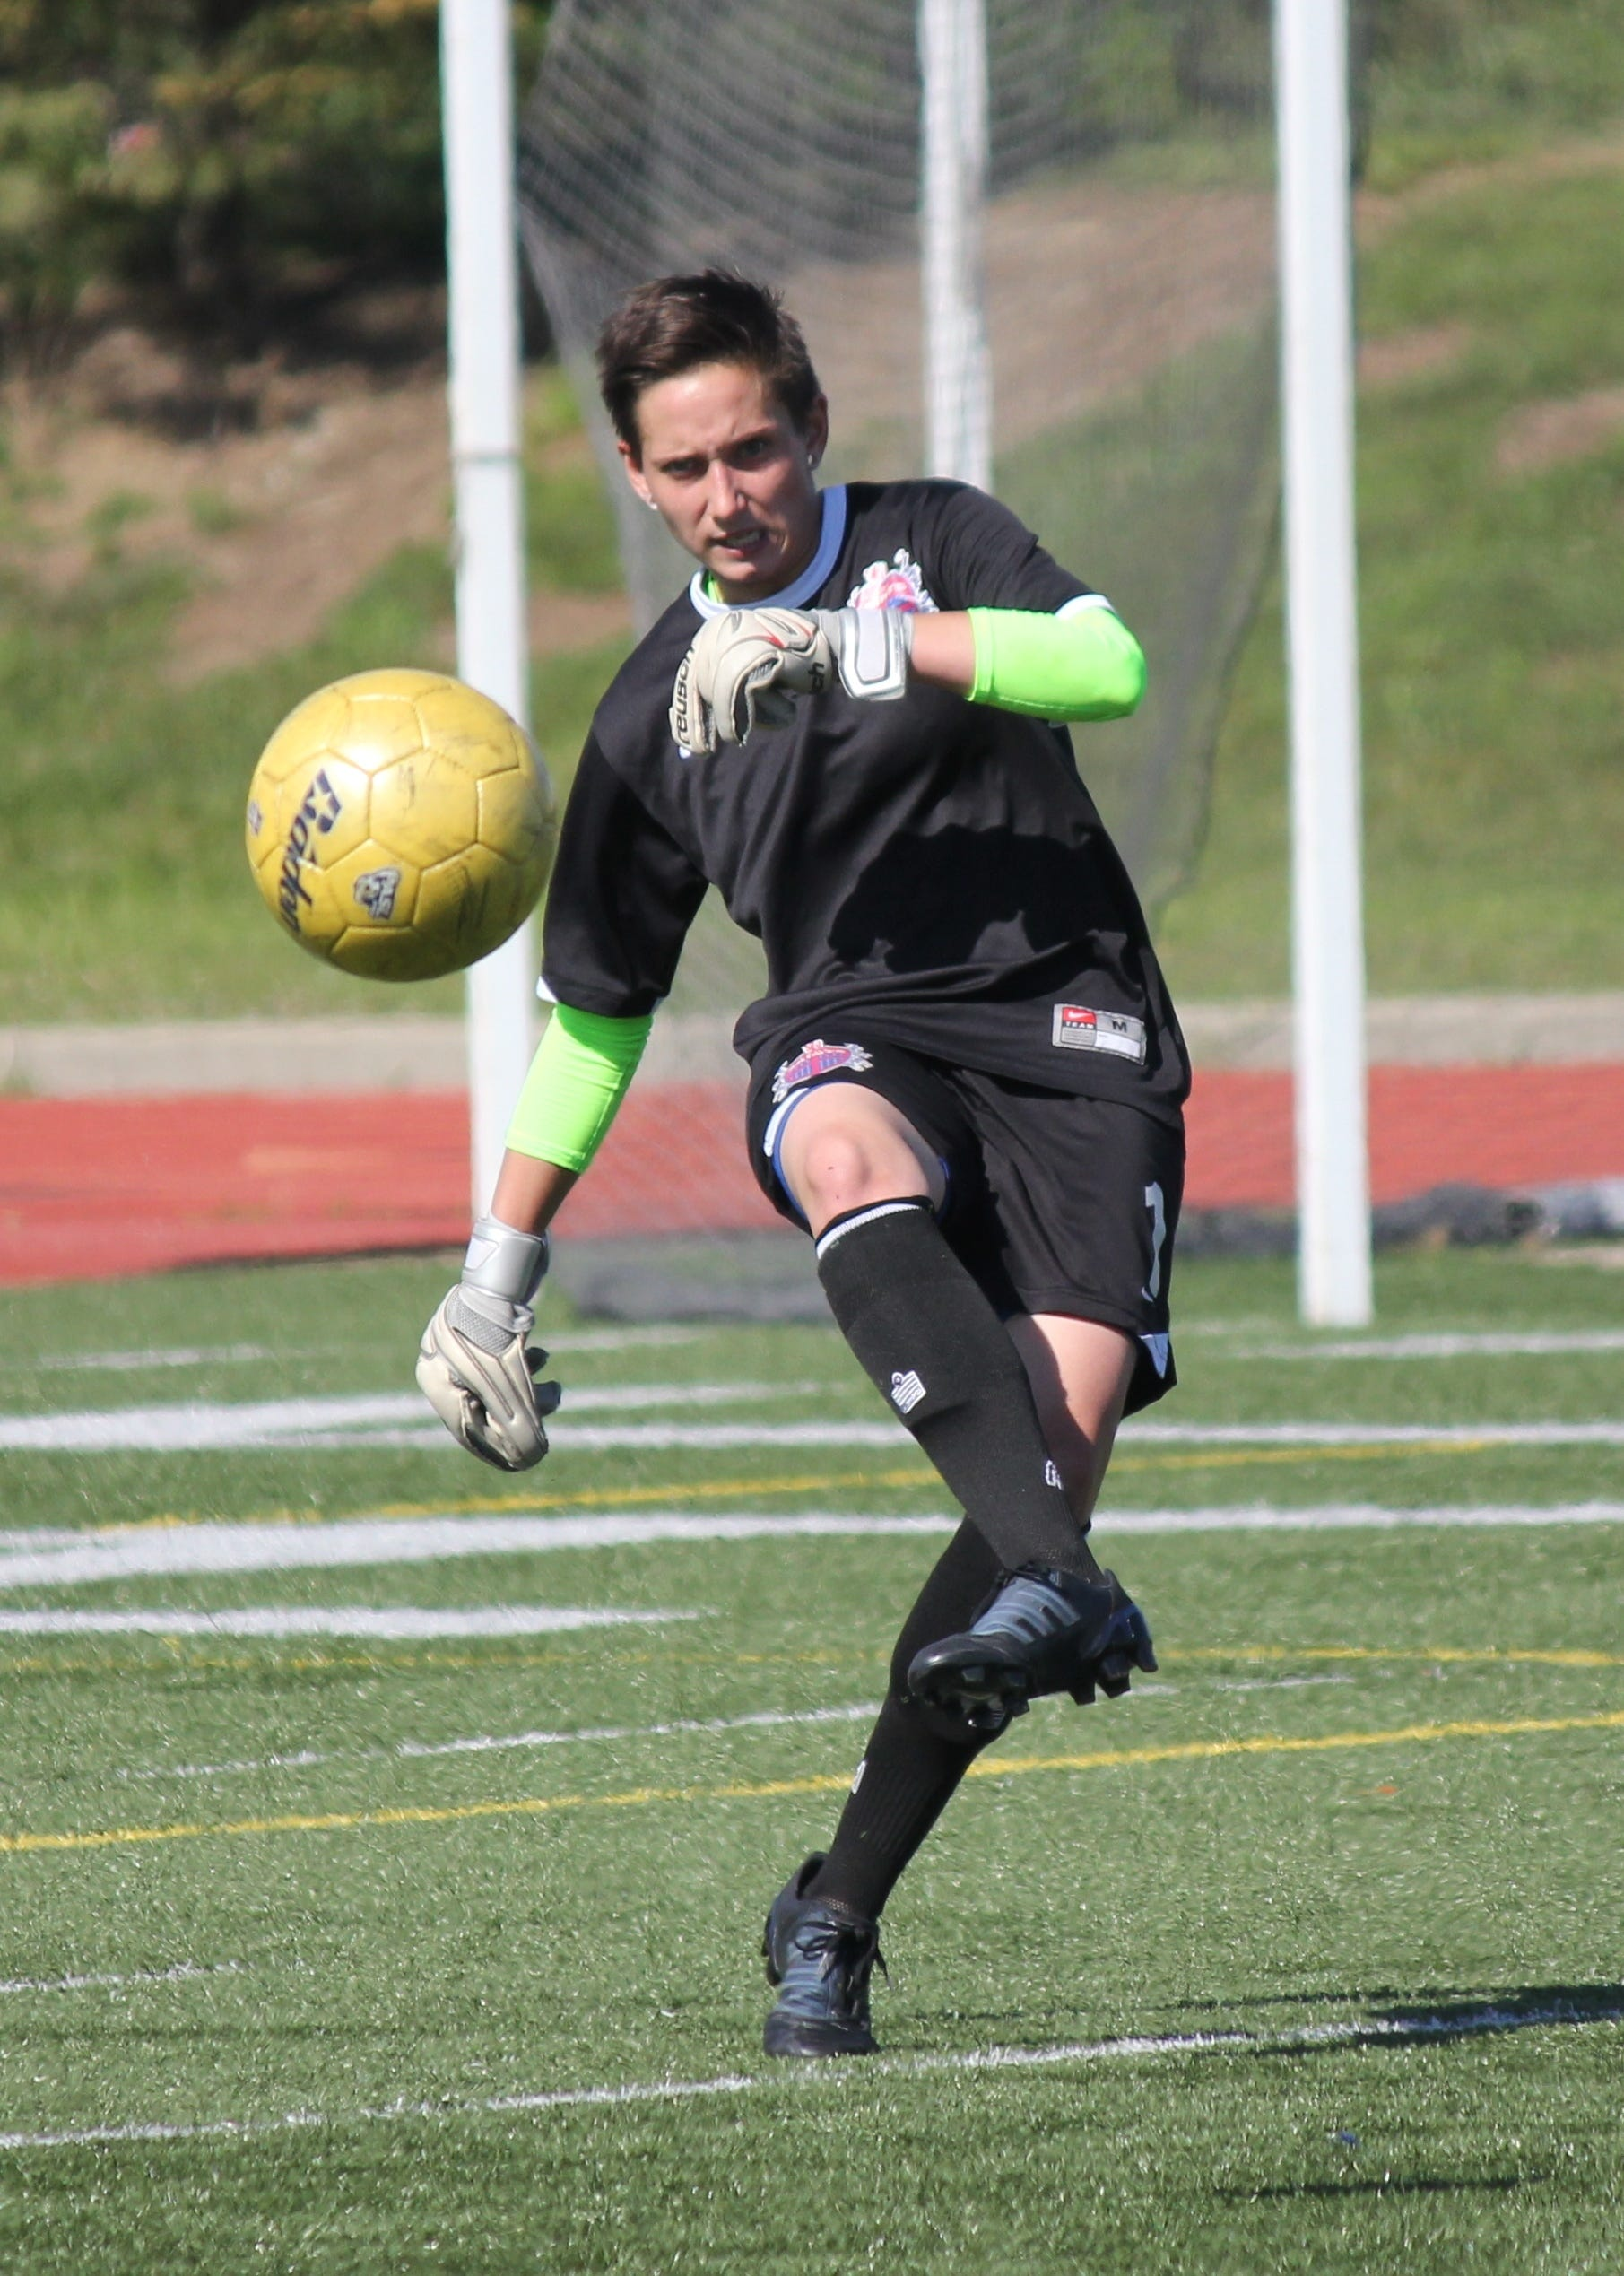 Lady Saints starting keeper Sam Rolsen (Turpin graduate/Shawnee State) puts the ball in play in the July 5 game against FC Pride July 5 at Stargel Stadium.